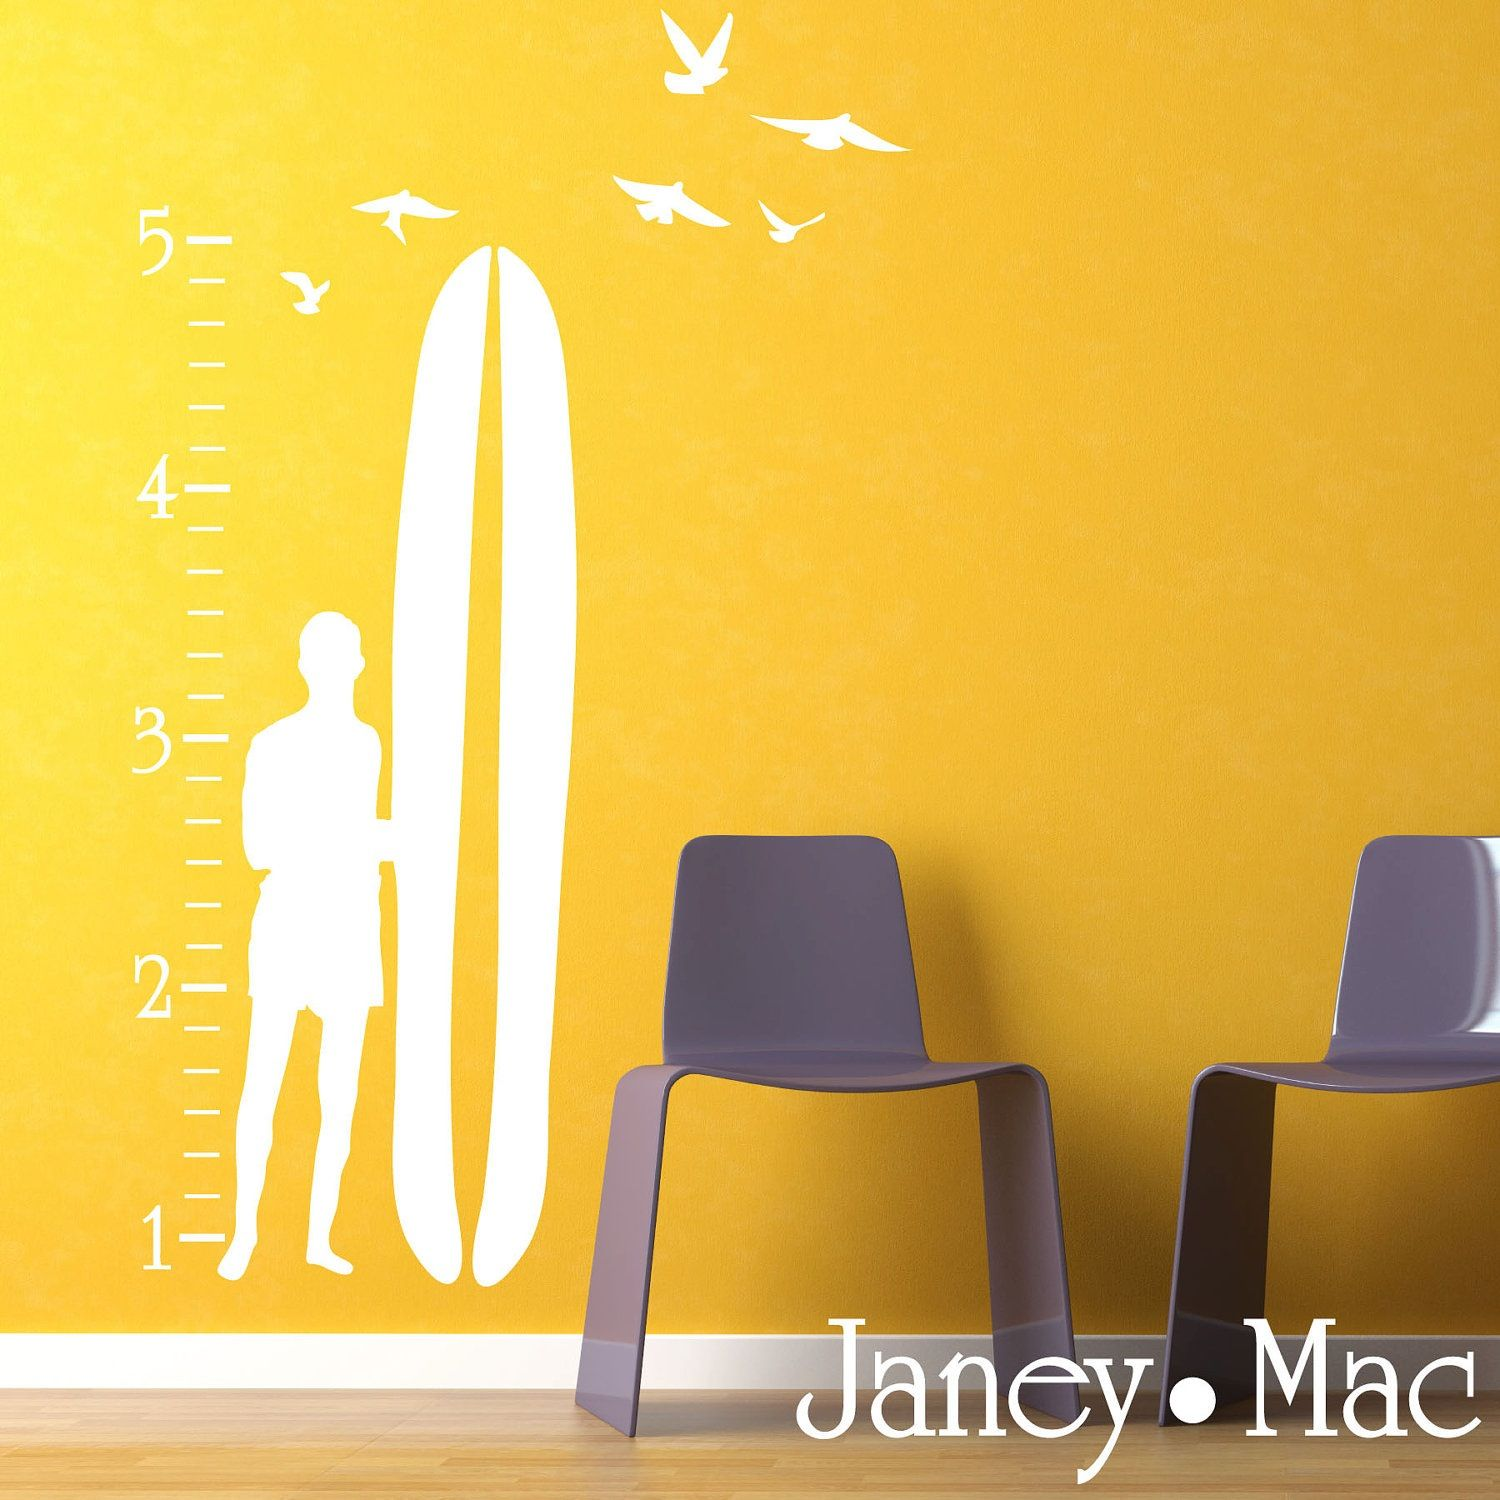 Etsy, janey Mac walls | Baby Shane | Pinterest | Macs, Walls and Room